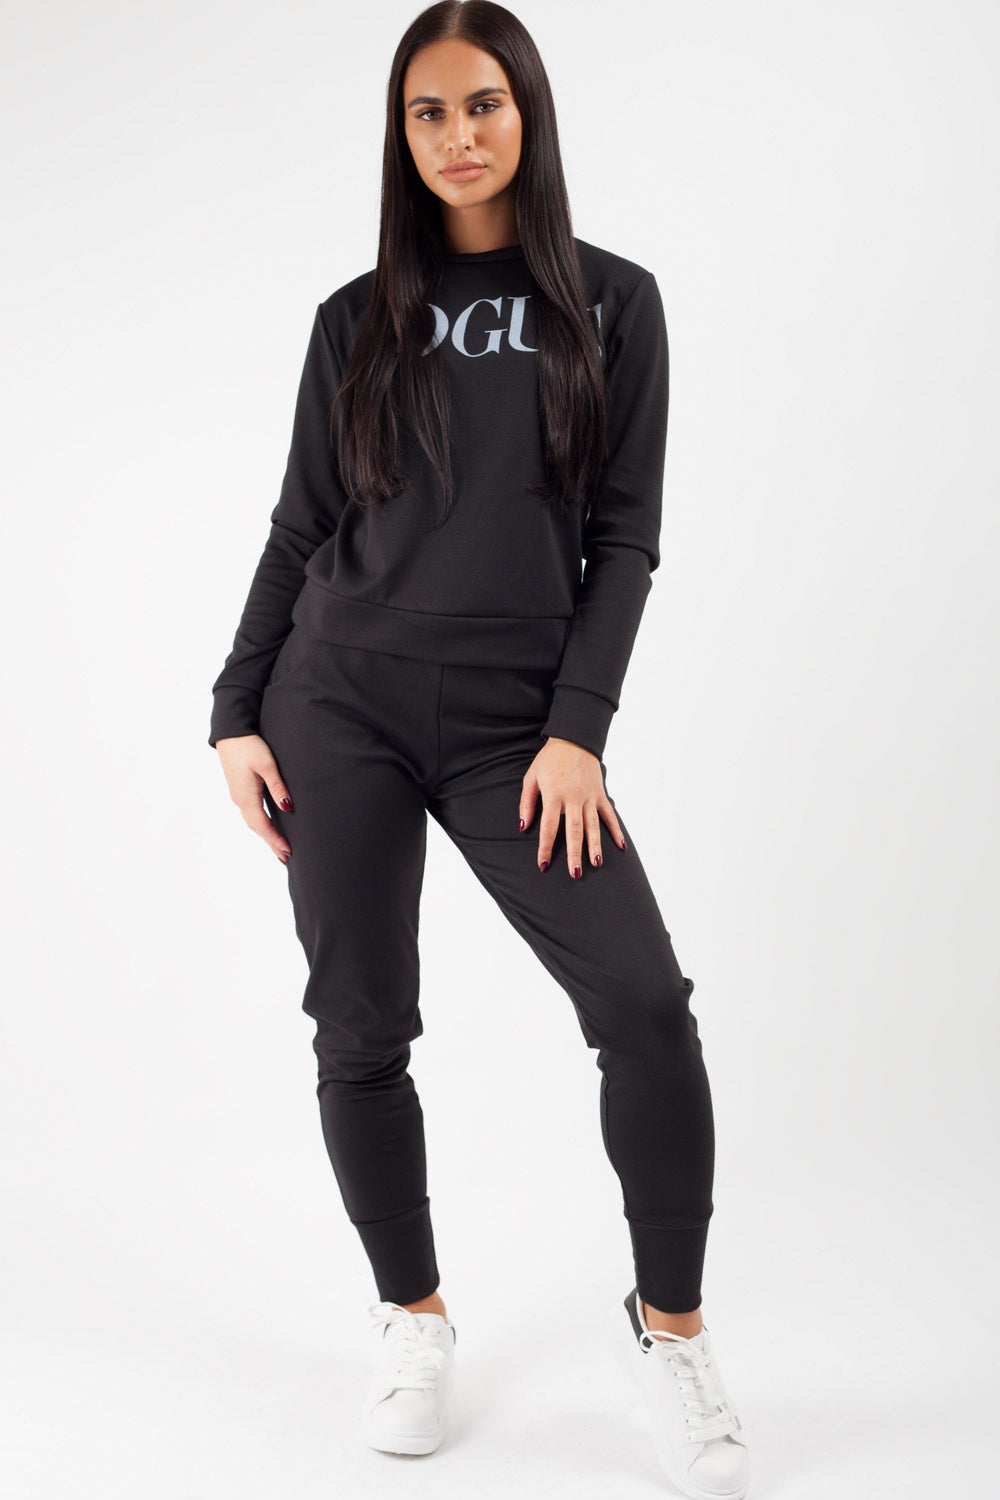 Black Vogue Loungewear Set